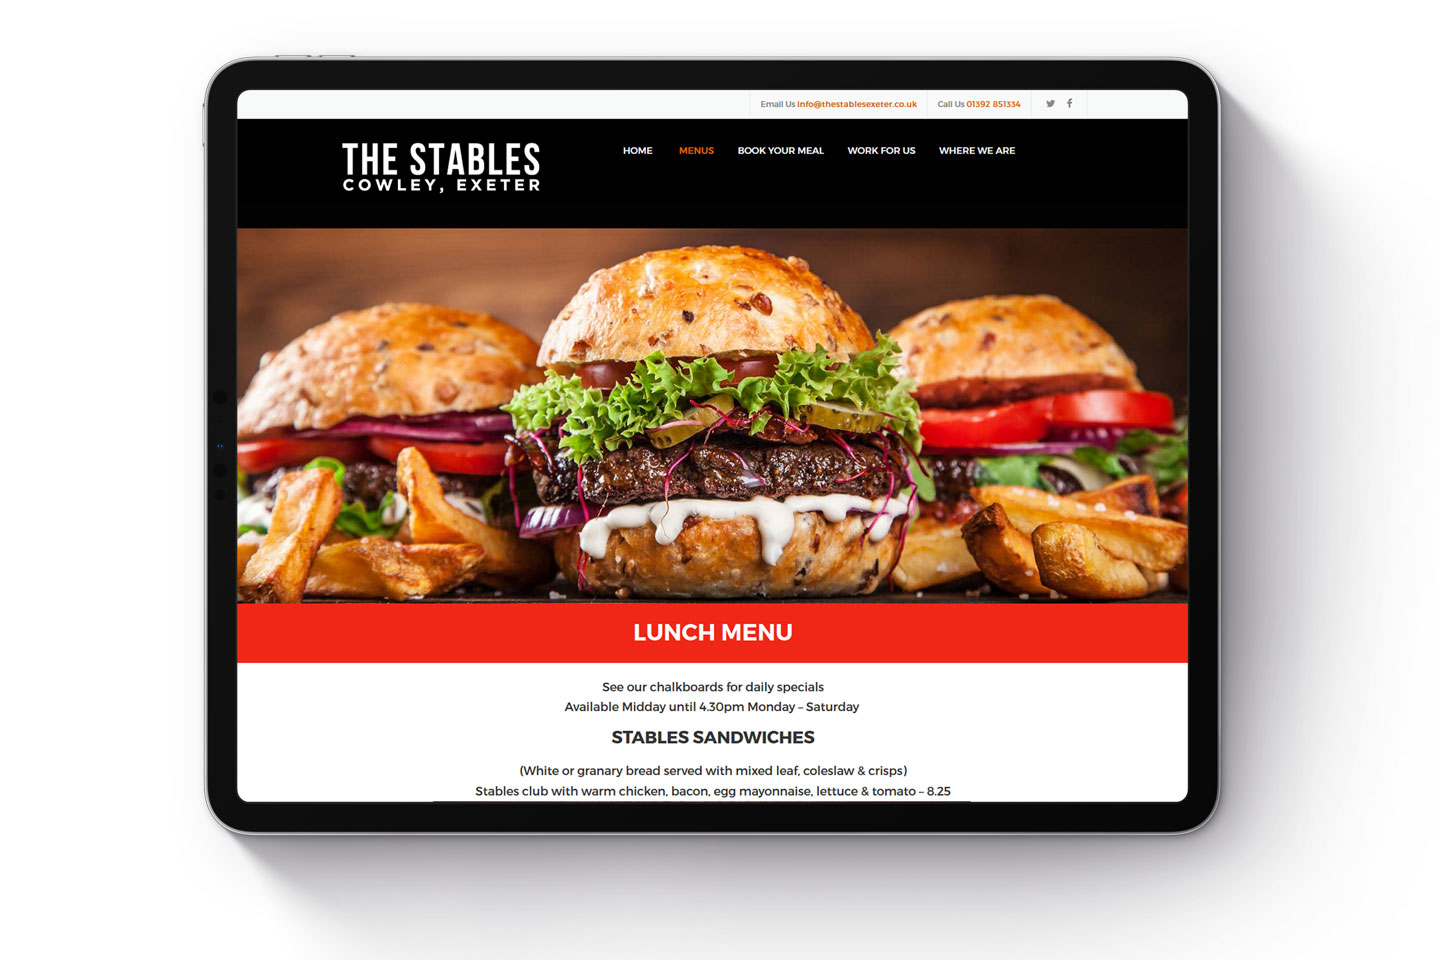 Evolve Promotion - The Stables Cowley Exeter Website